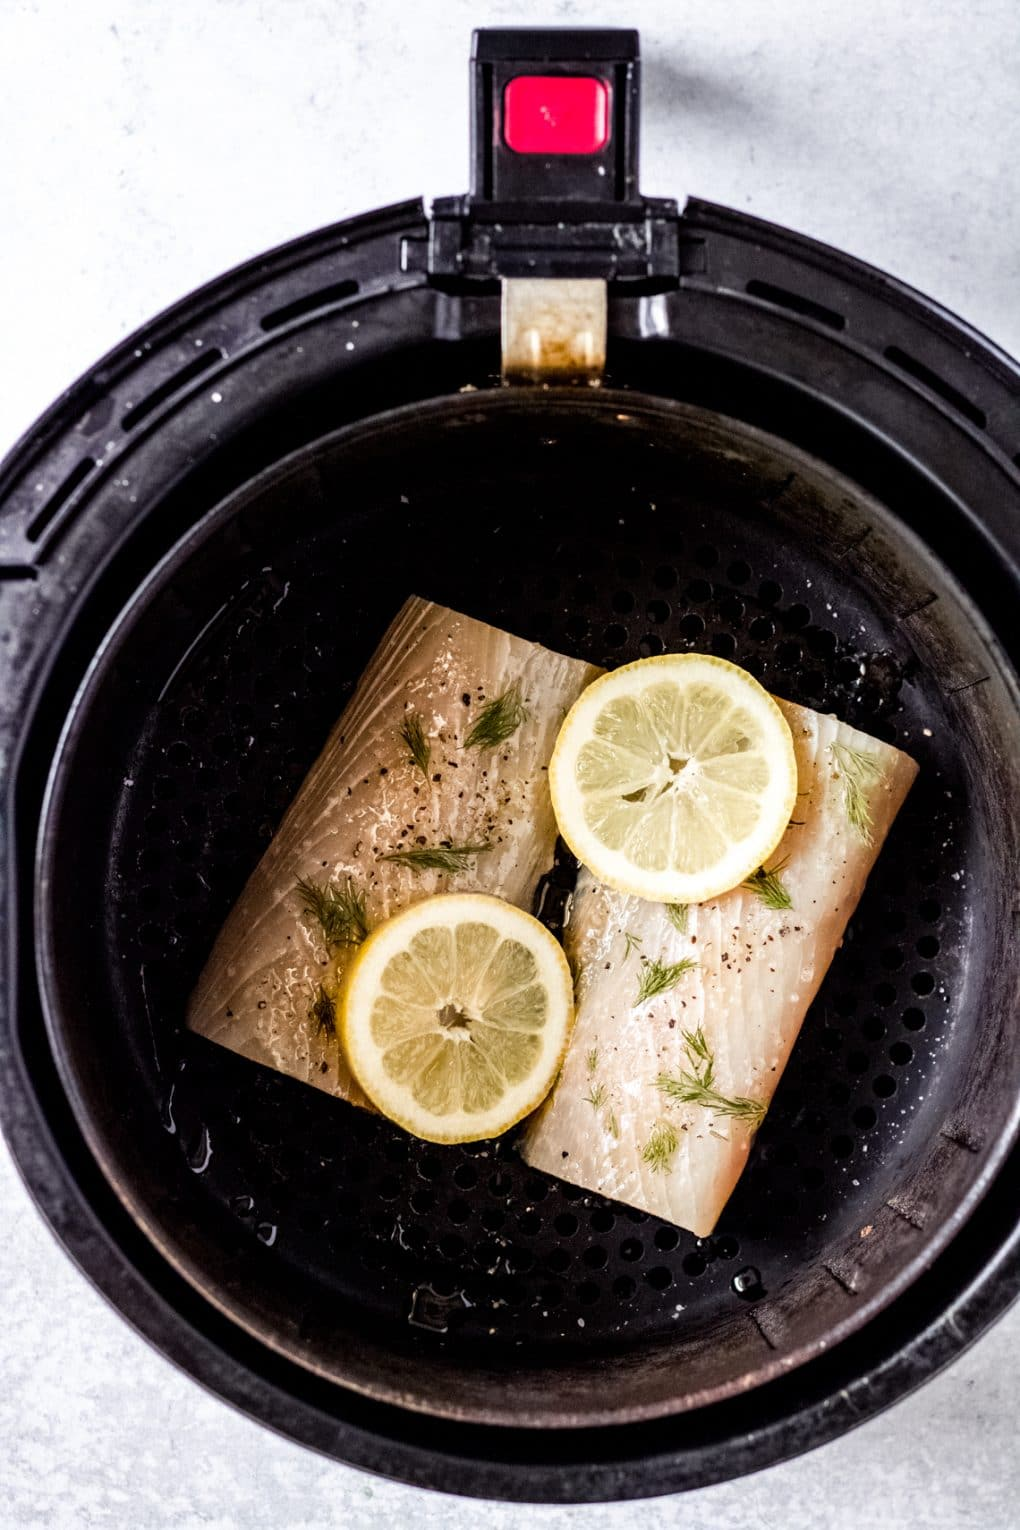 mahi mahi fillets in an air fryer basket